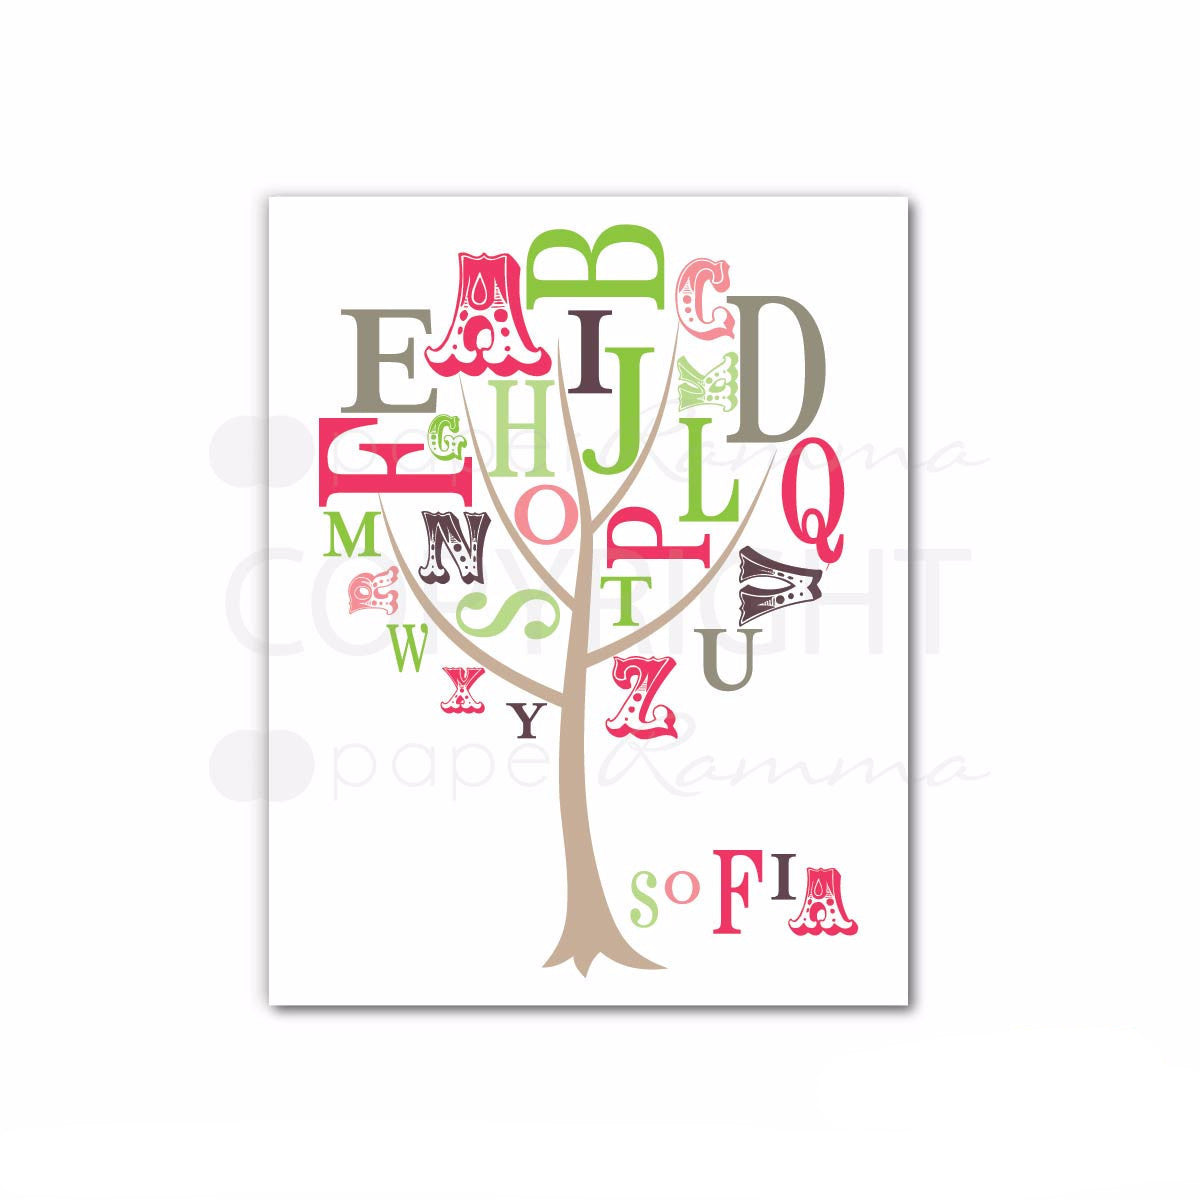 ABC Tree Print featuring Child's Name Nursery & Kids Art Print